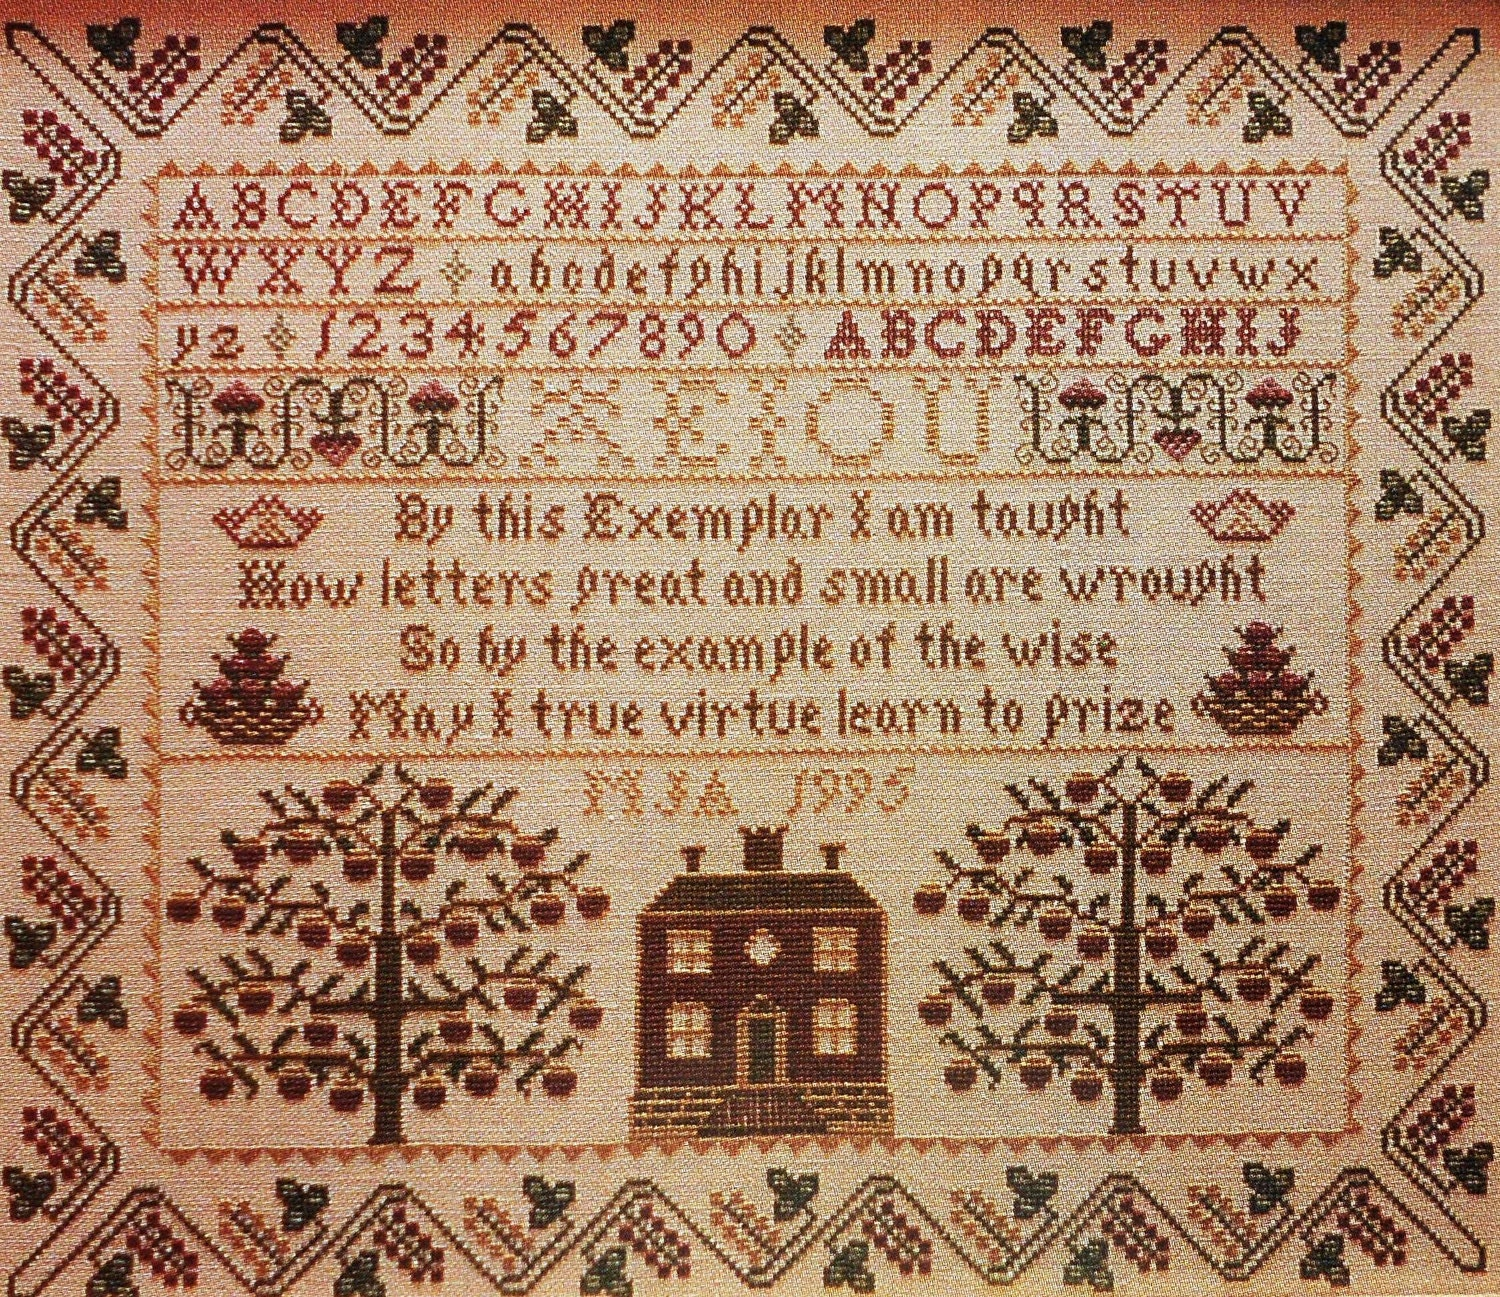 Janie appelbaum true virtue sampler antique by